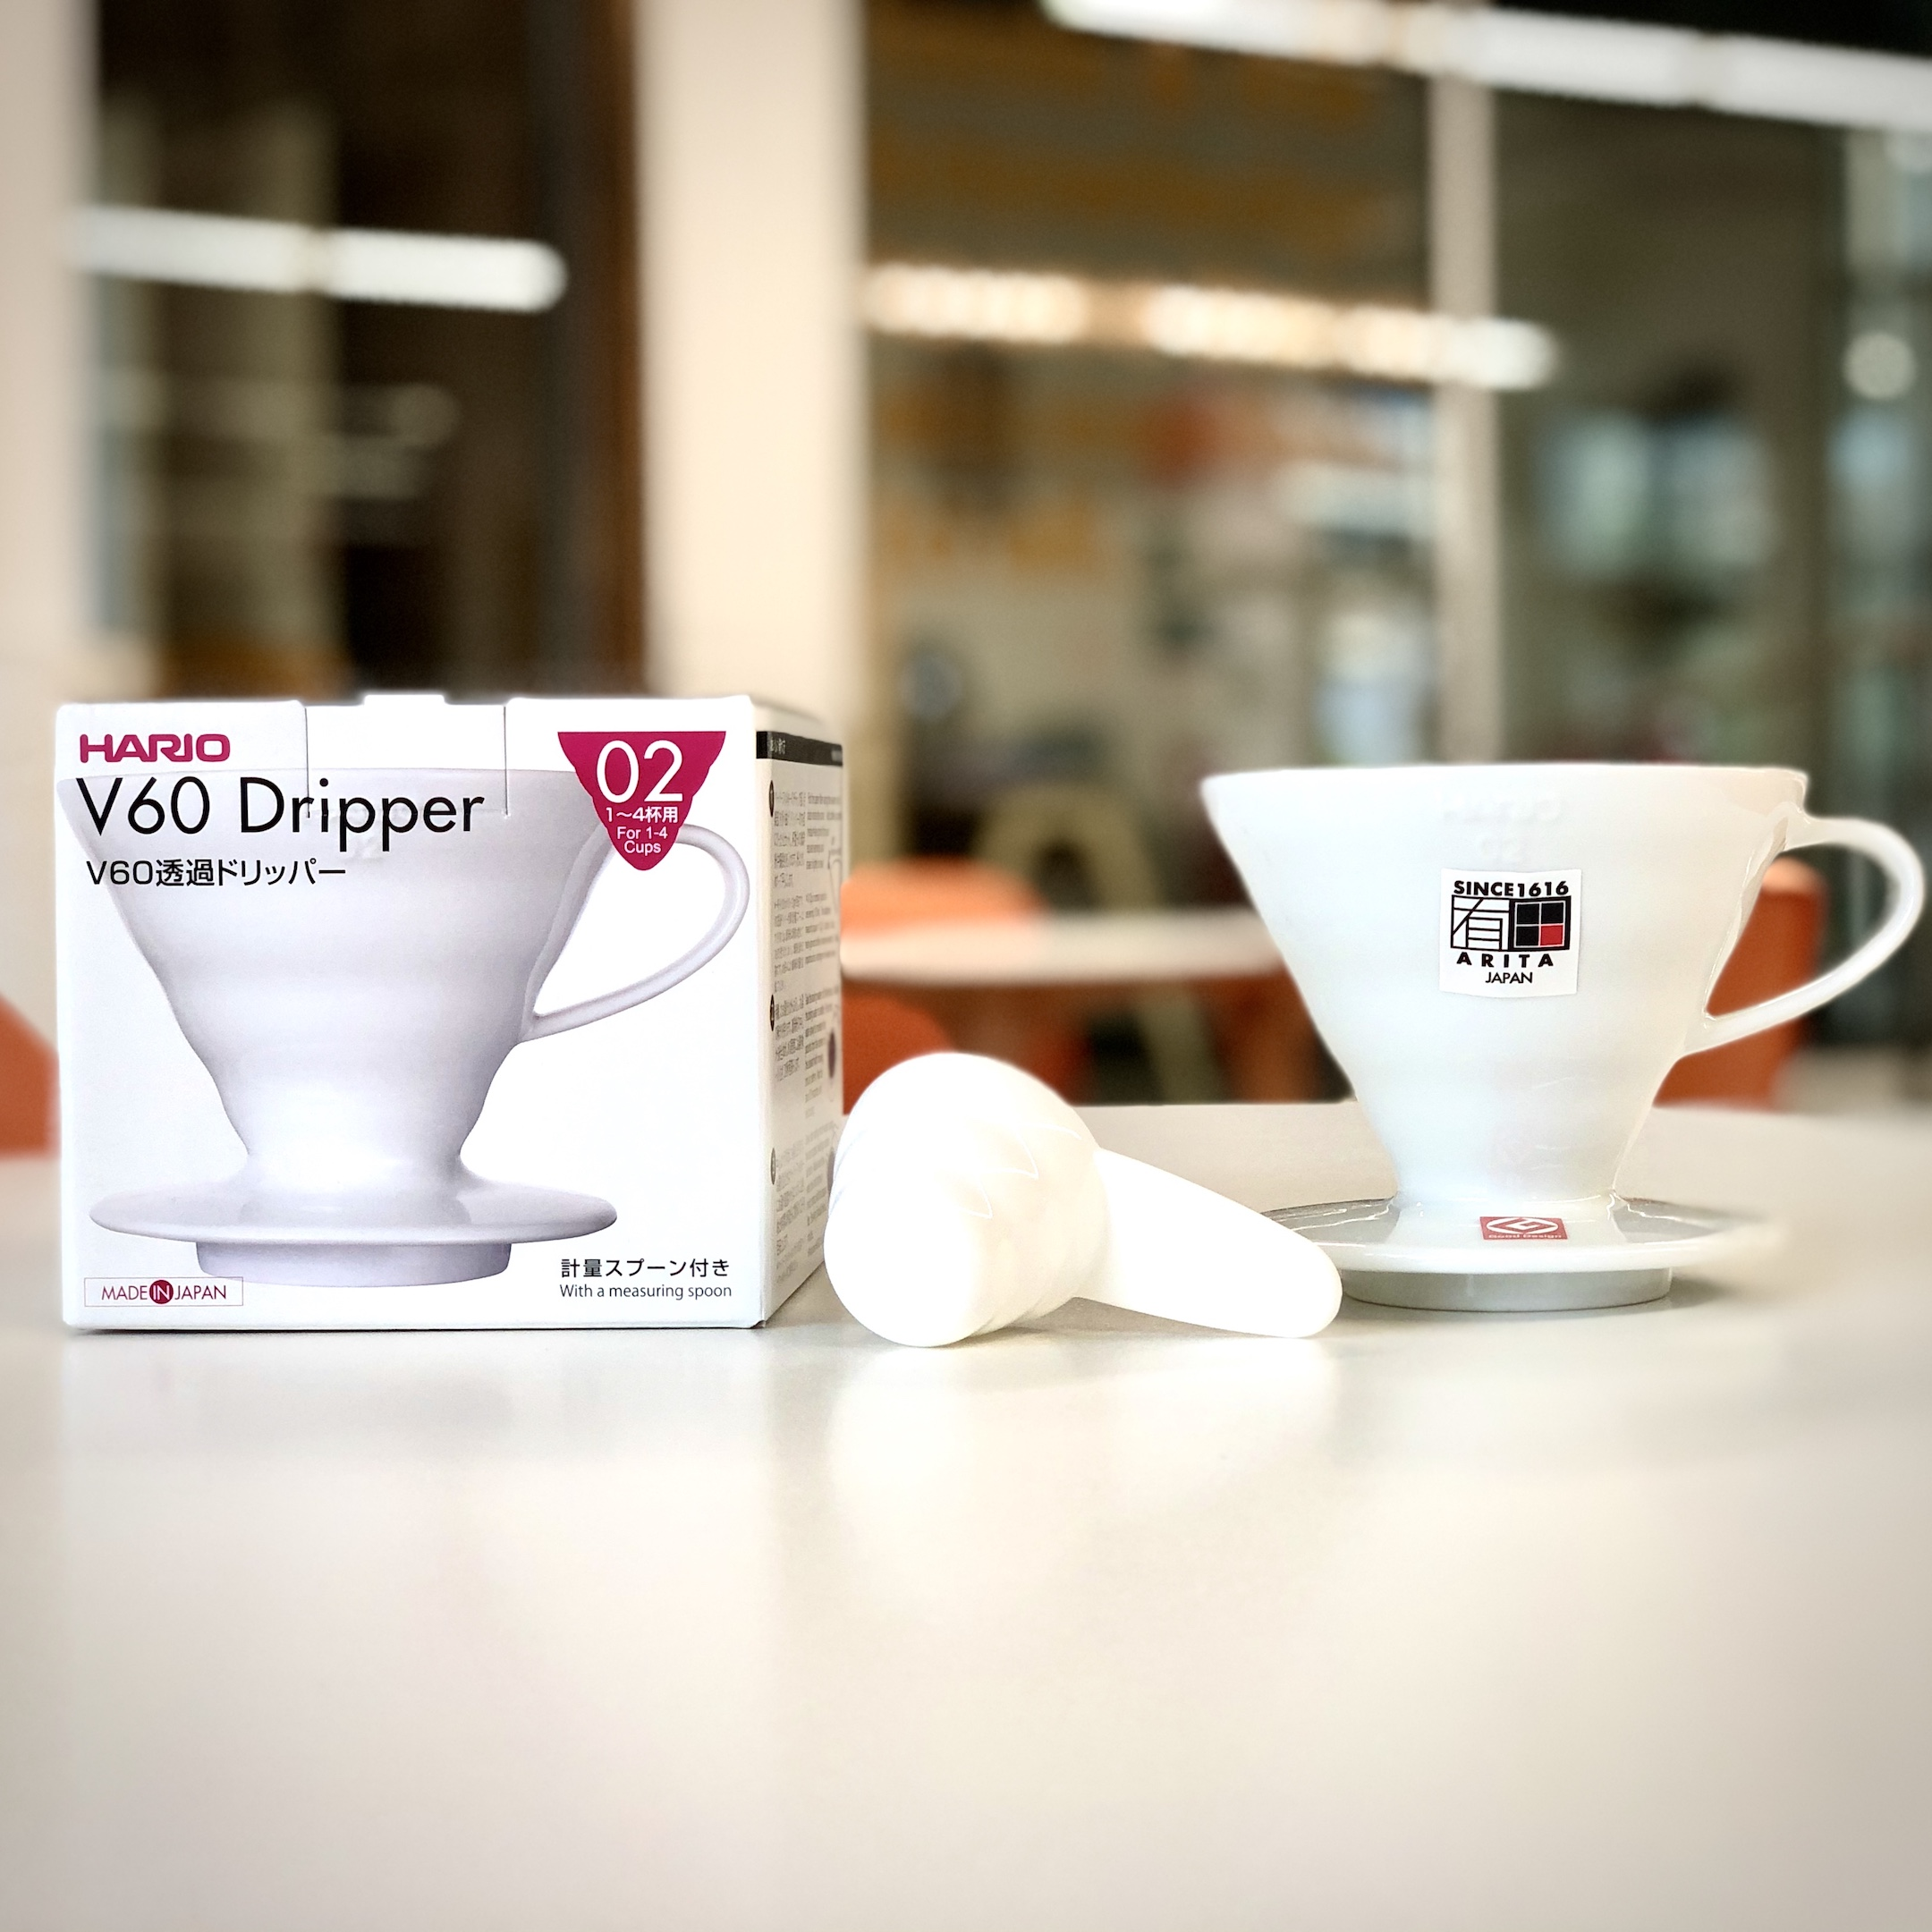 Hario V60 Ceramic Dripper 02 (White)